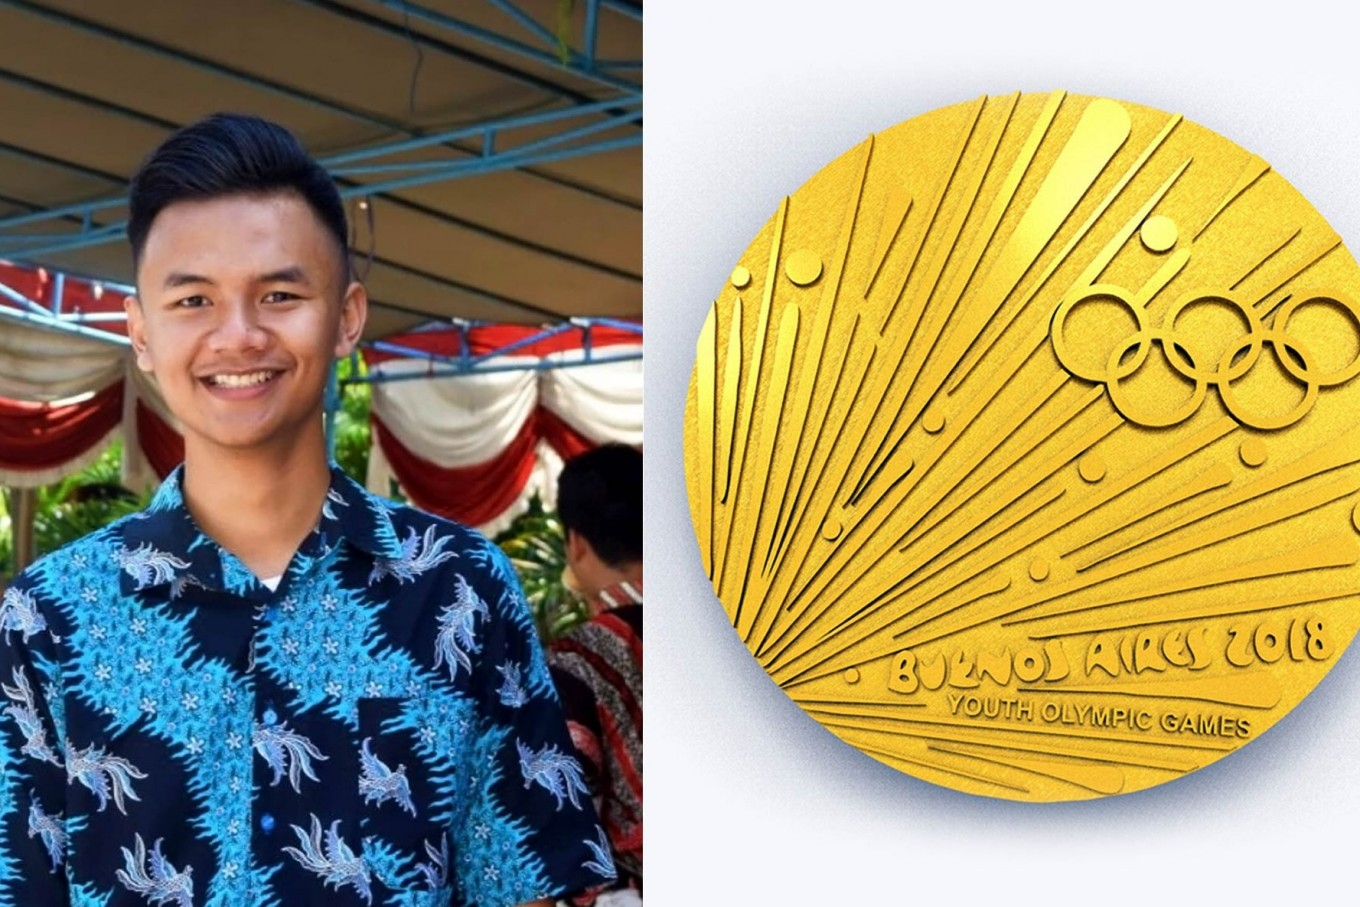 Indonesian student wins Youth Olympic Games design competition